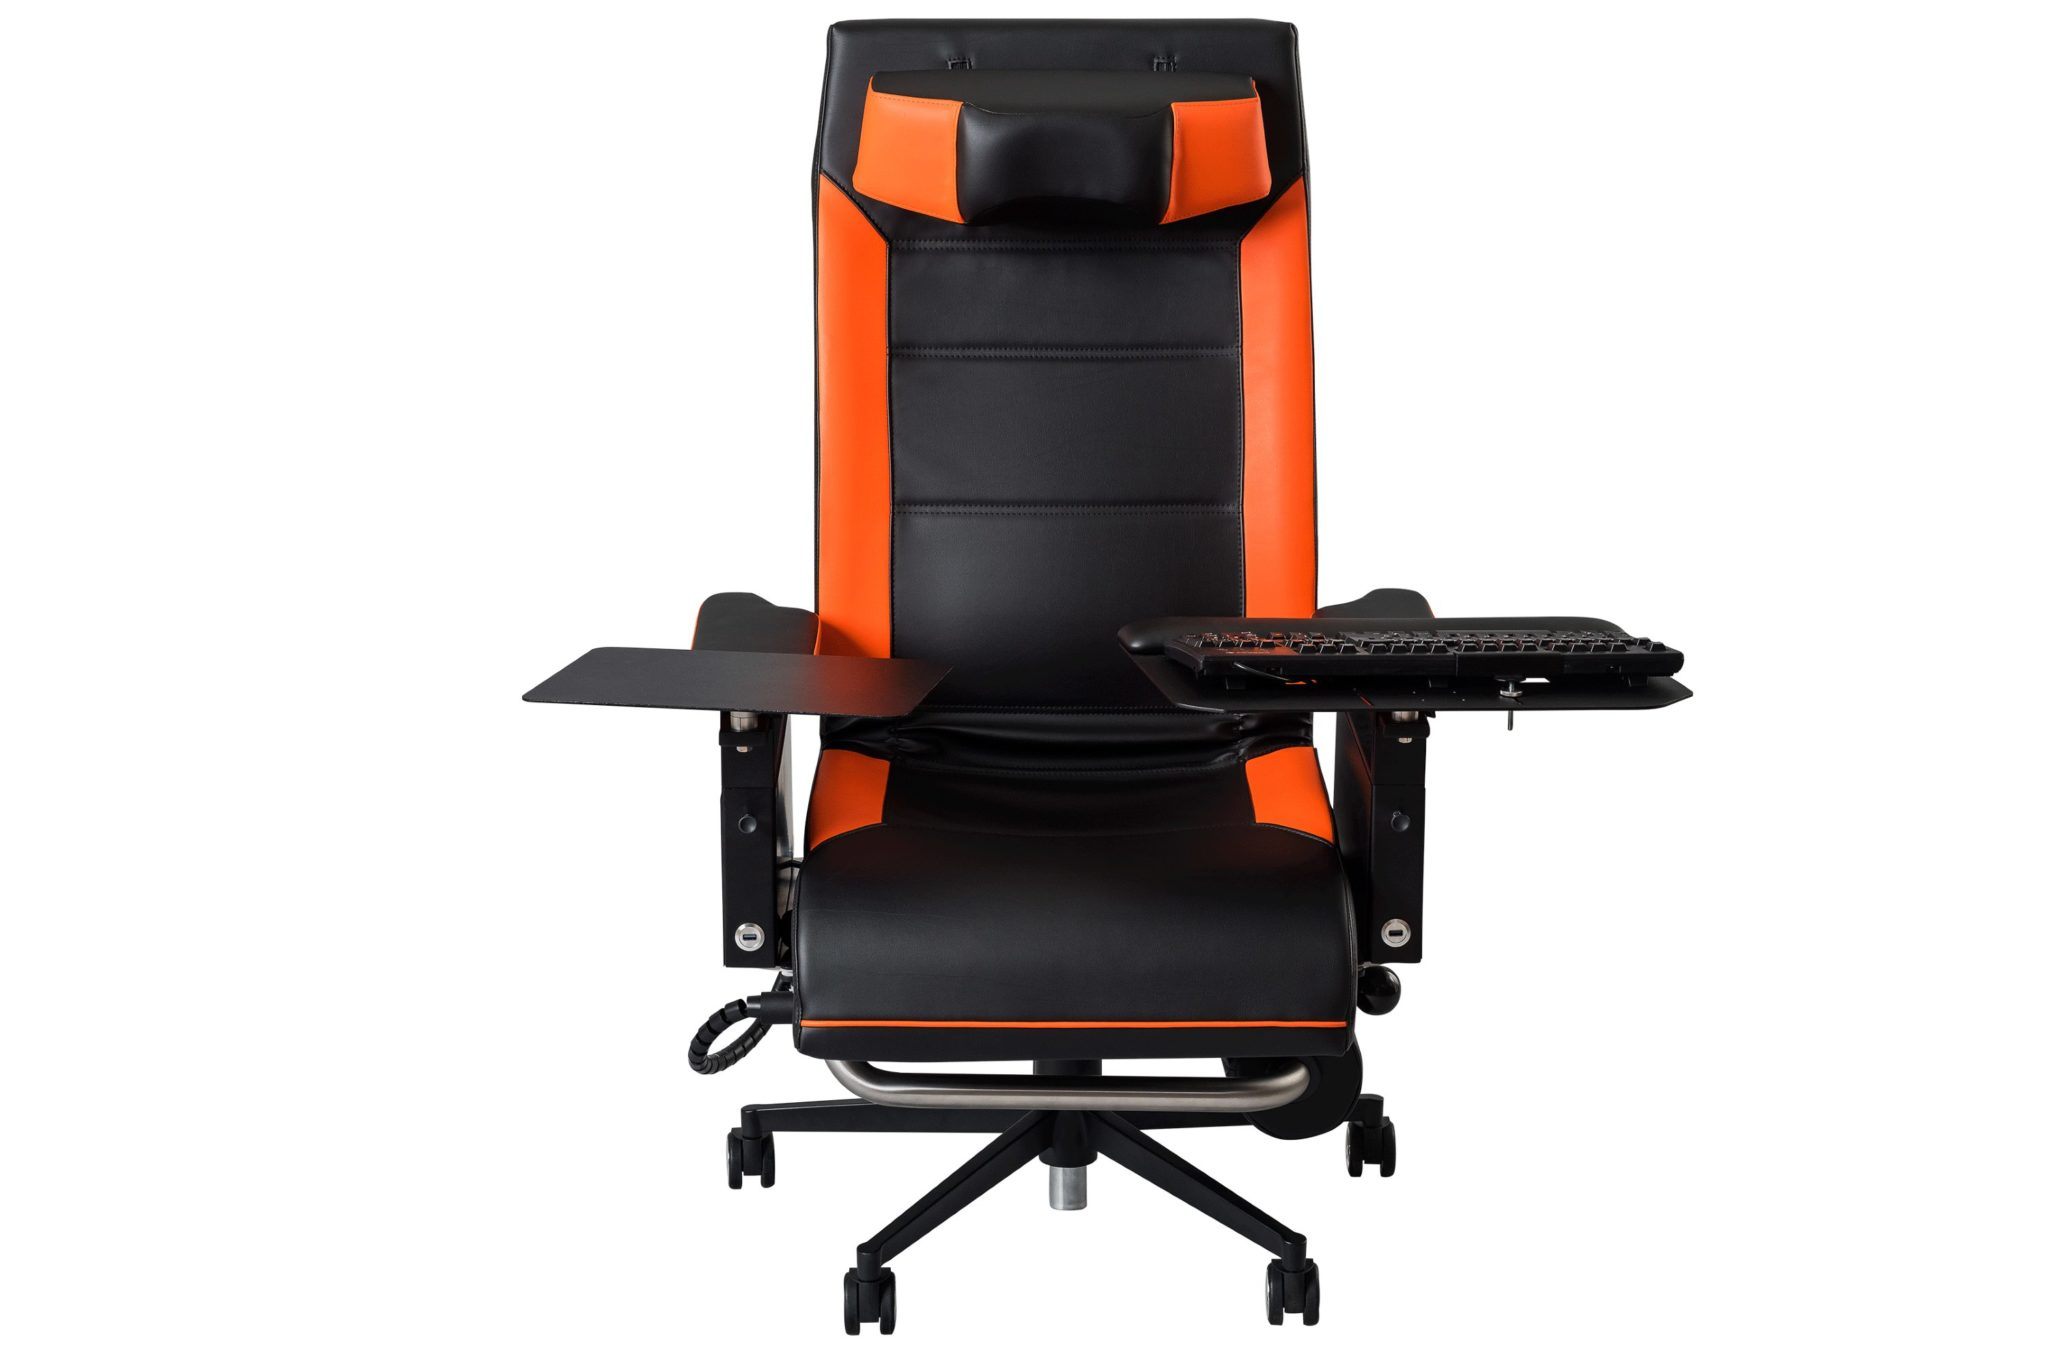 gosu chair der wohl beste gaming stuhl f r vielspieler ist ein exklusives premiumprodukt f r. Black Bedroom Furniture Sets. Home Design Ideas